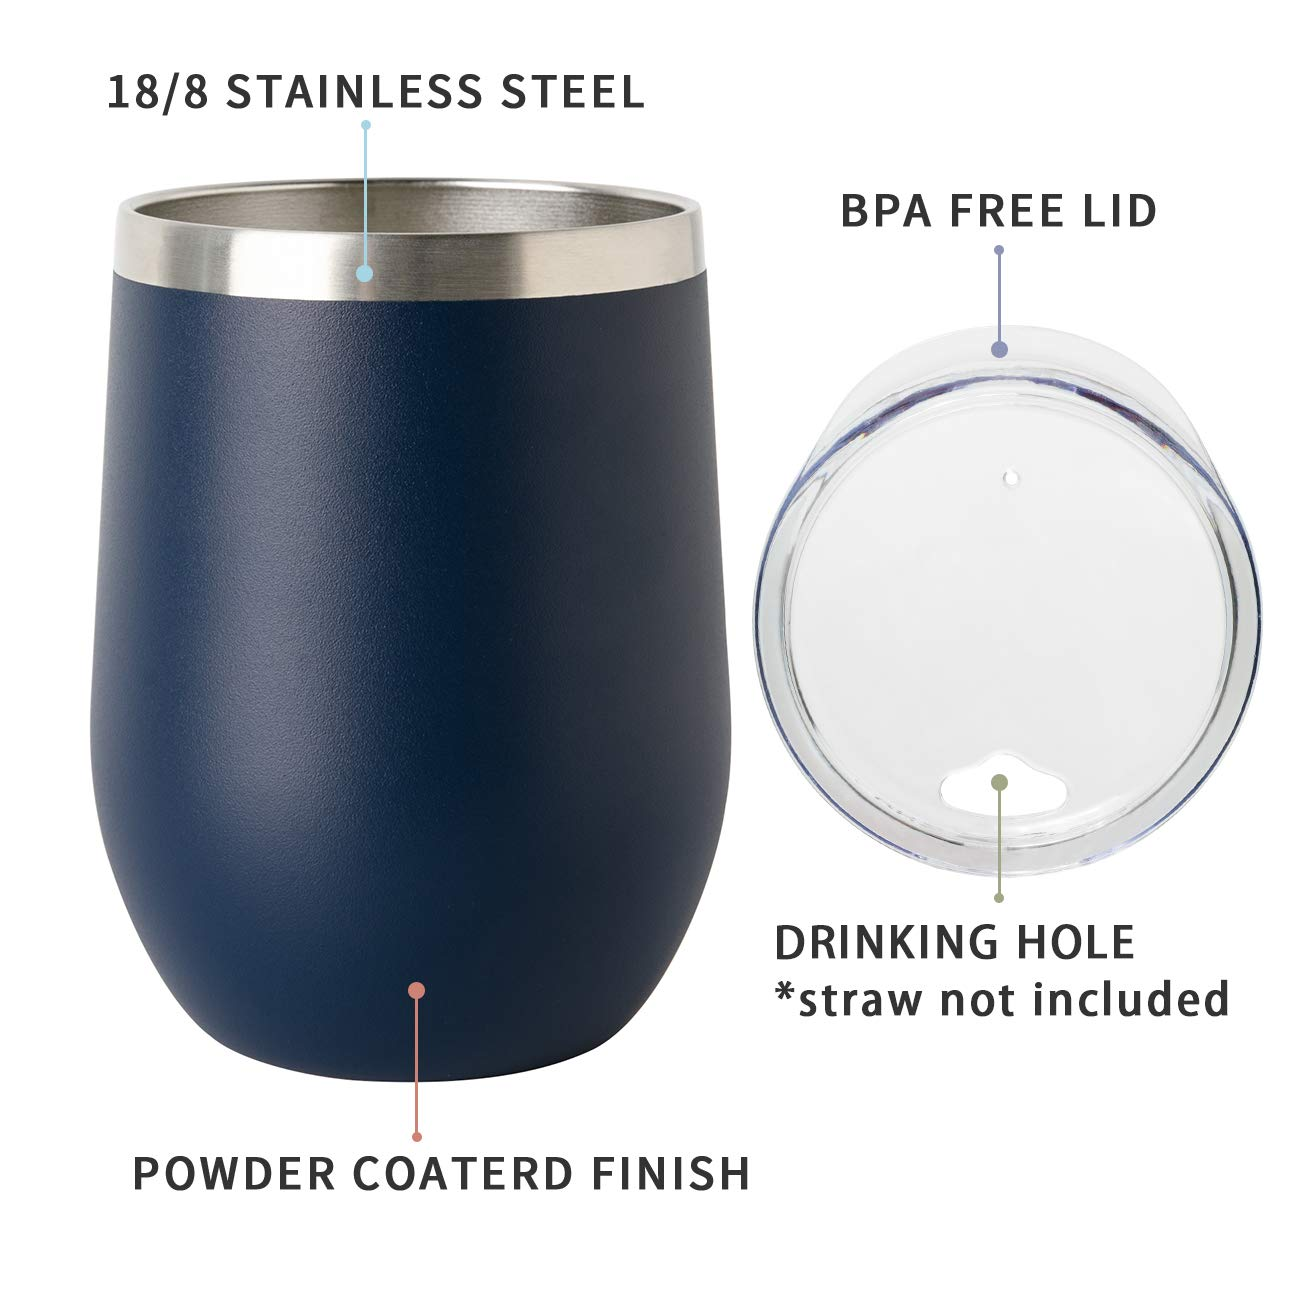 ONEB Stainless Steel Wine Tumbler with Lid, 12 OZ | Double Wall Vacuum Insulated Travel Tumbler Cup for Coffee, Wine, Cocktails, Ice Cream Cup With Lid (Navy, 12OZ-8pack) by ONEB (Image #3)